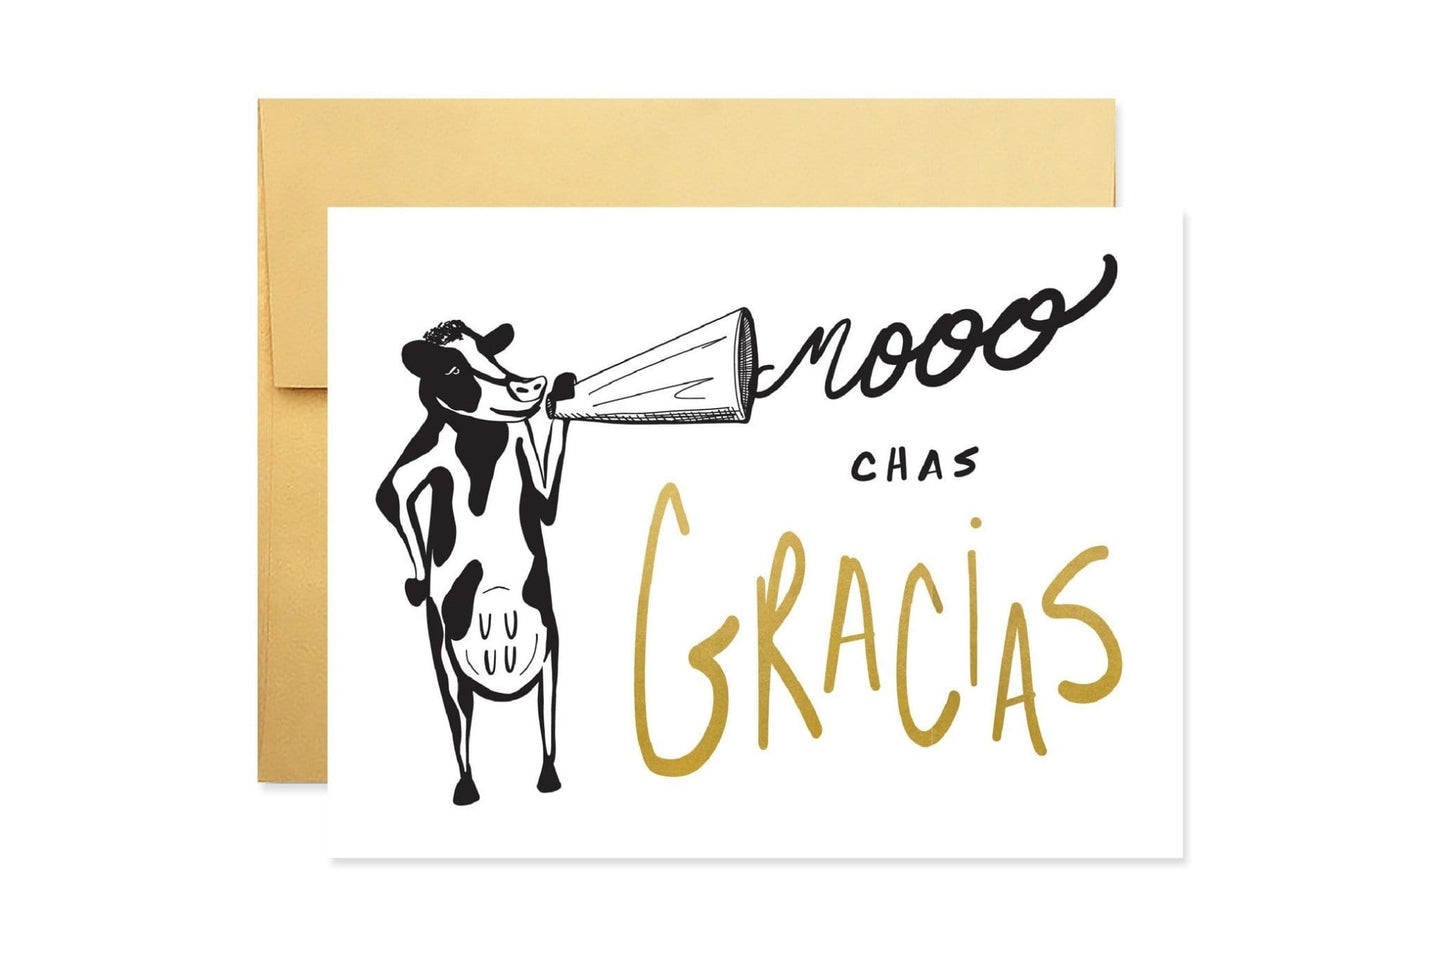 Moochas Gracias / Neighborhood Goods